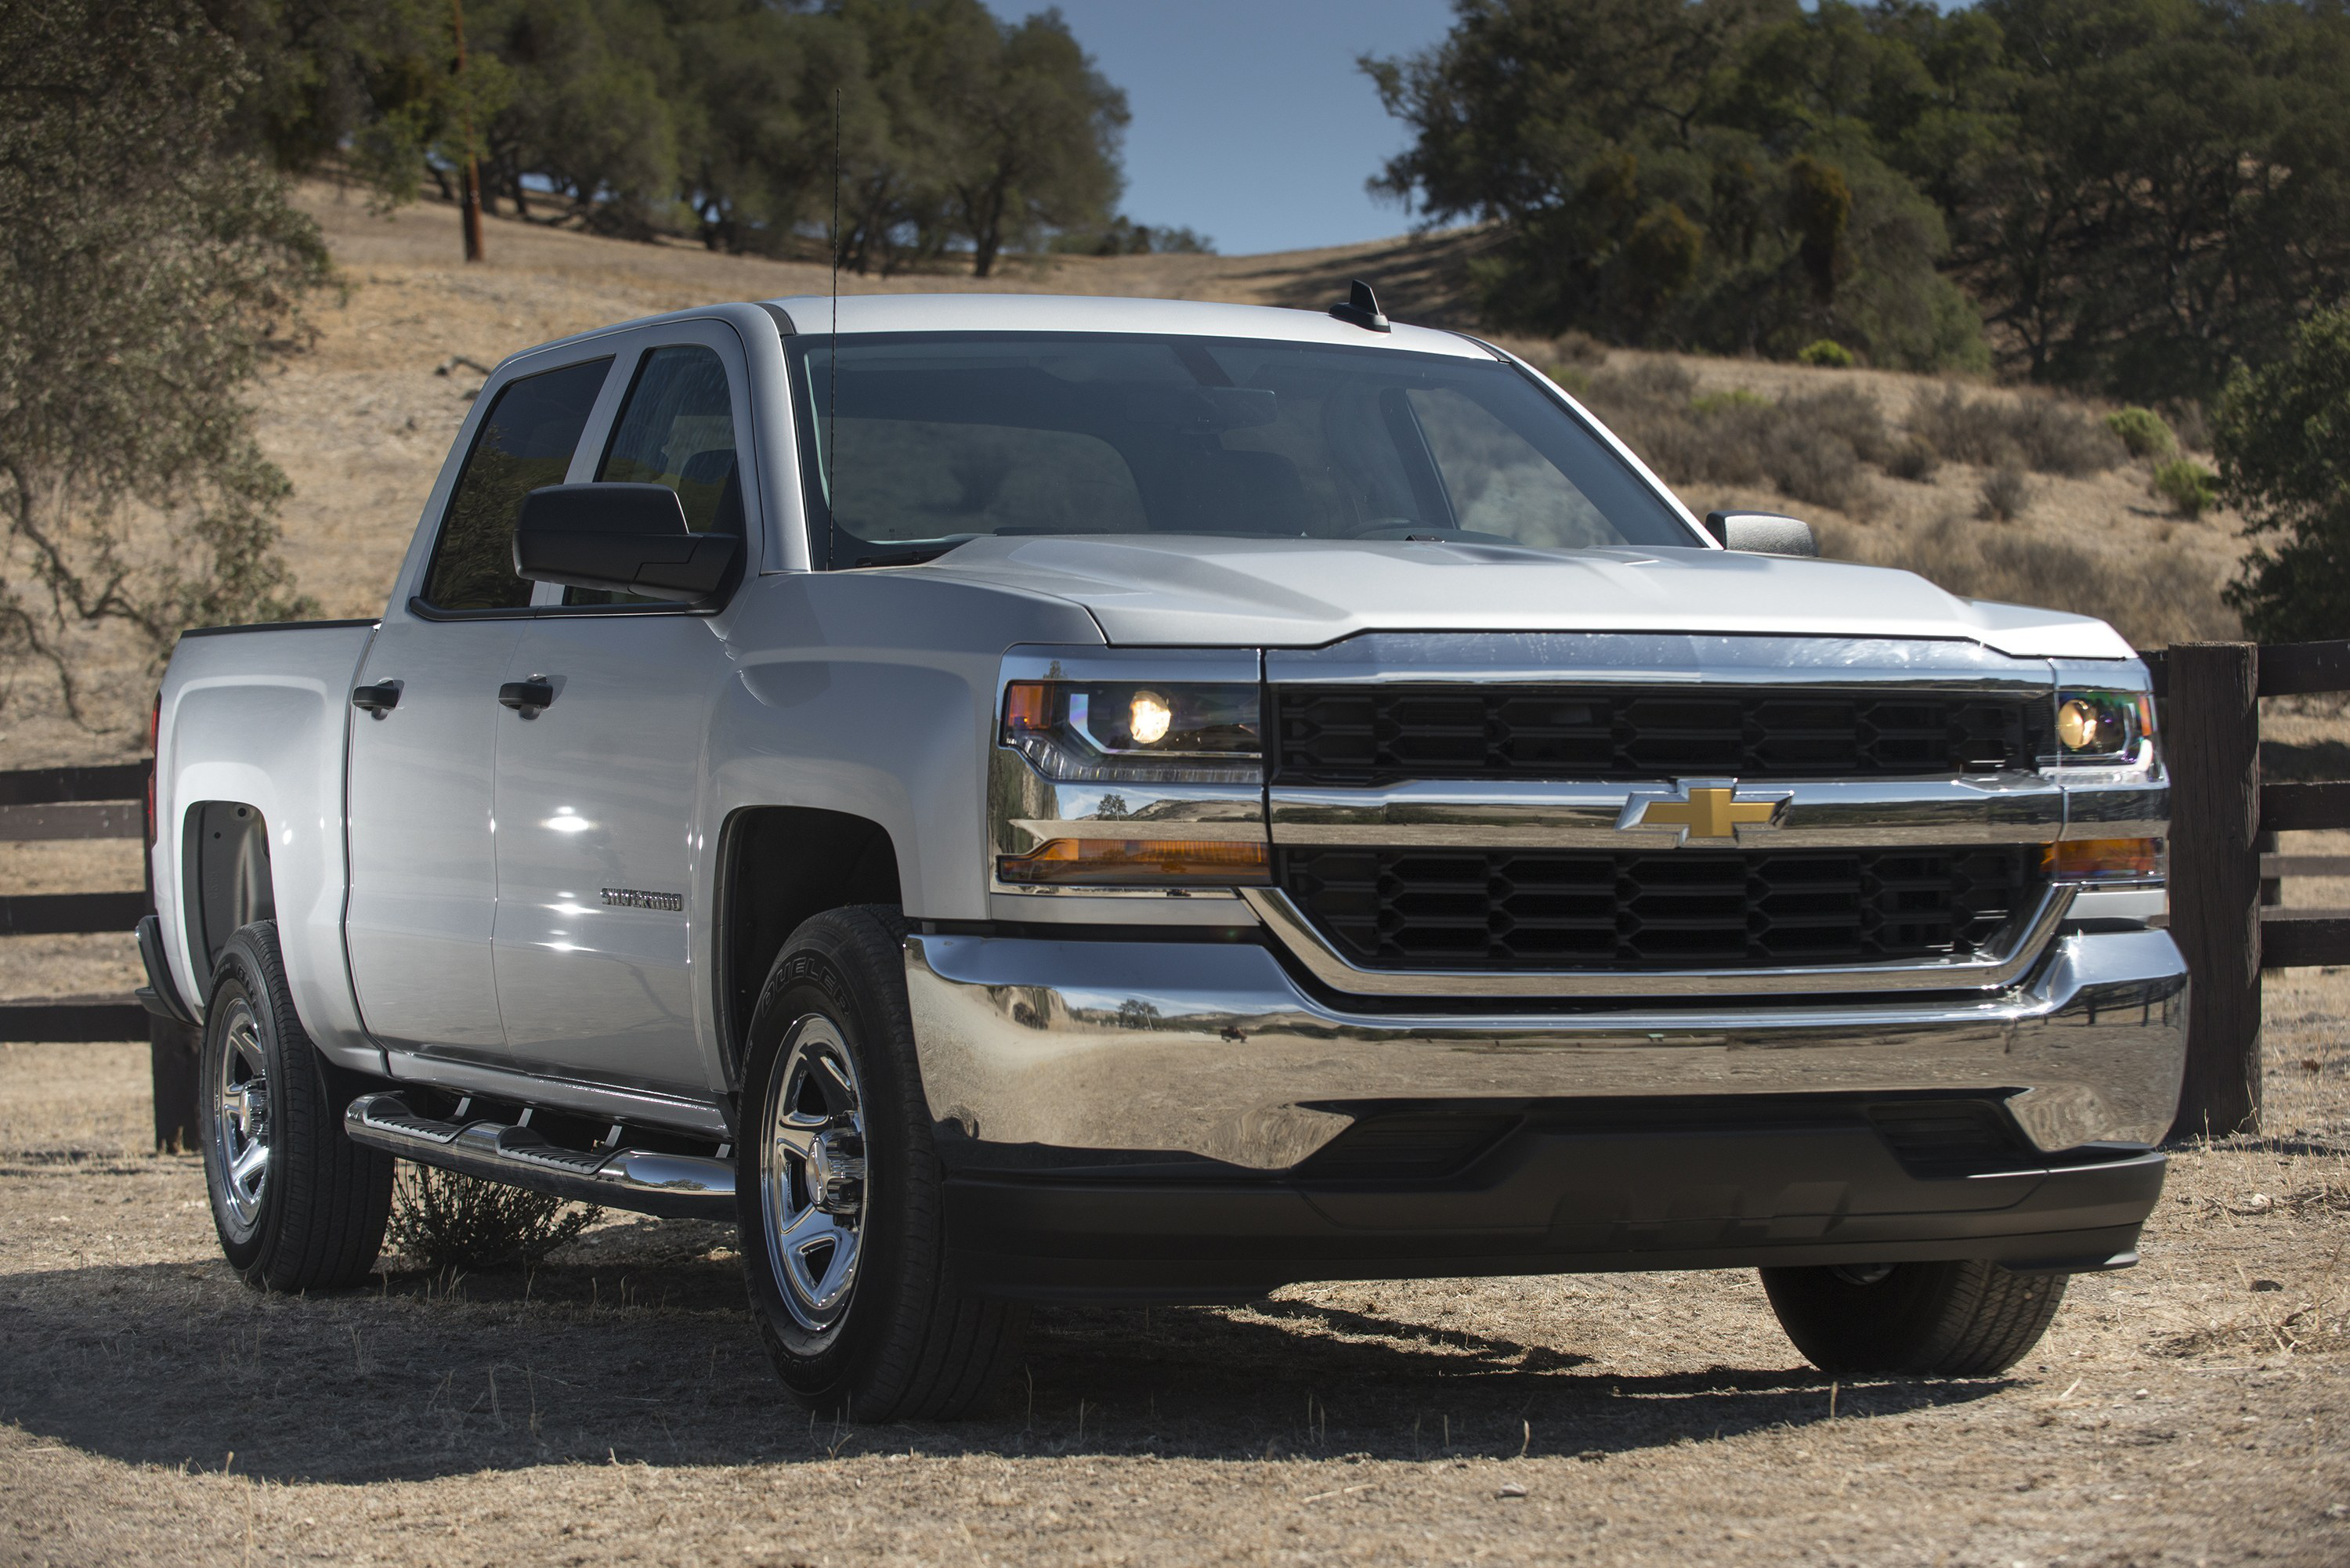 A Brake Pedal Defect Has Led Gm To Recall Certain 2017 2016 Chevrolet Silverado 2500 3500 1500 Crew Cab Special Service Tahoe Police Pursuit